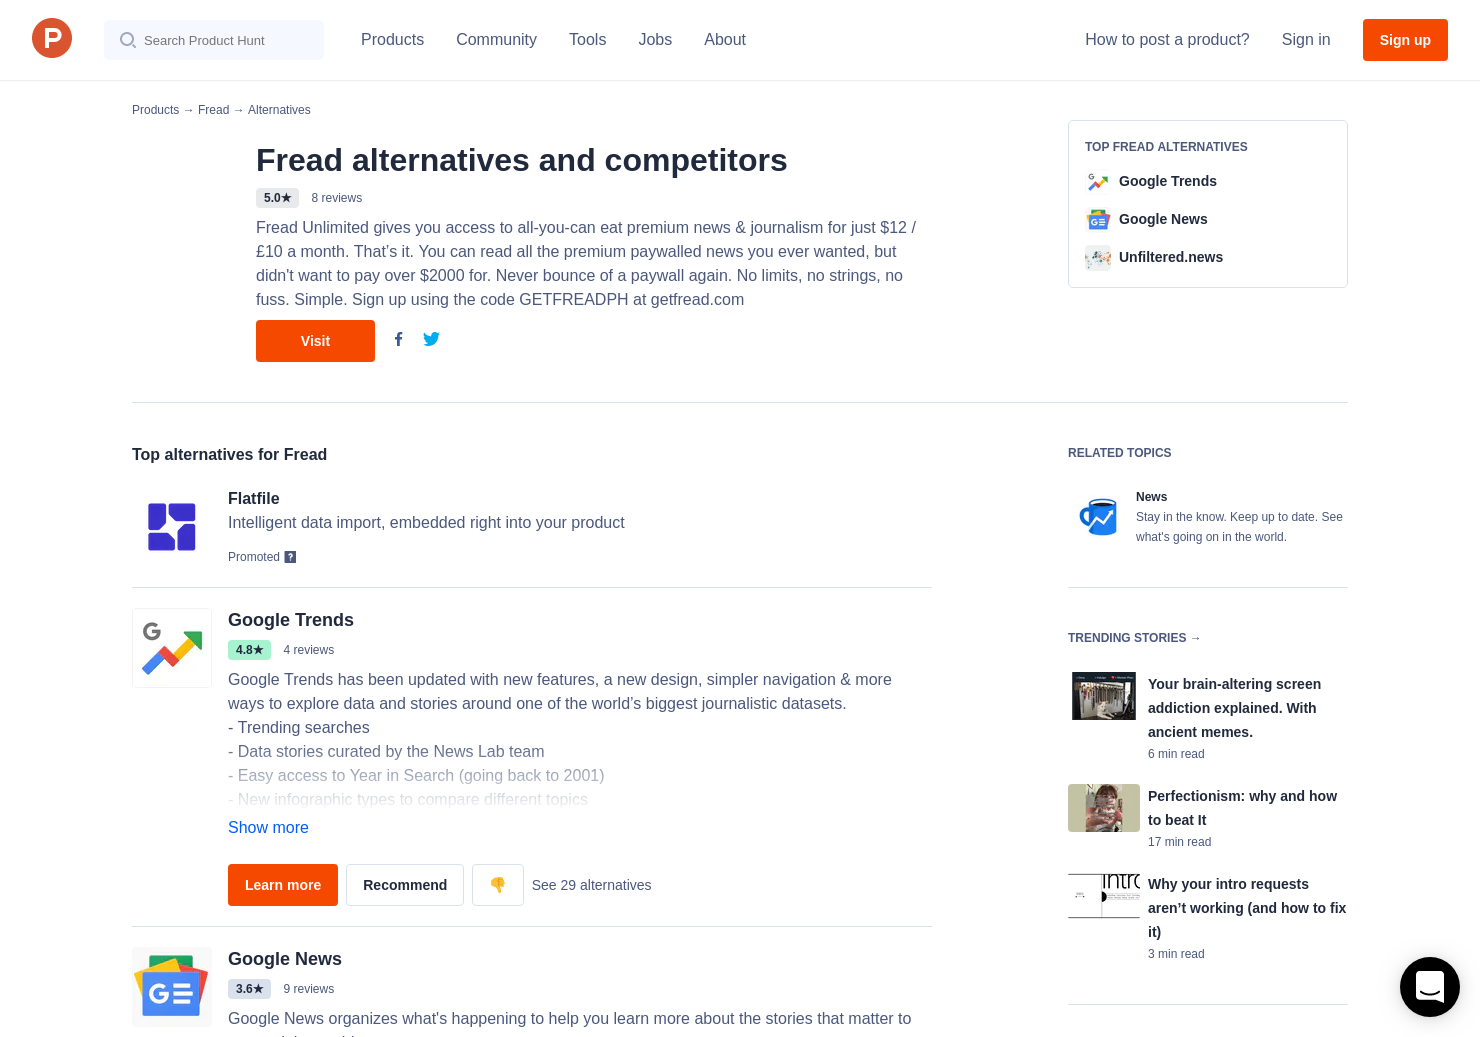 11 Alternatives to Fread | Product Hunt